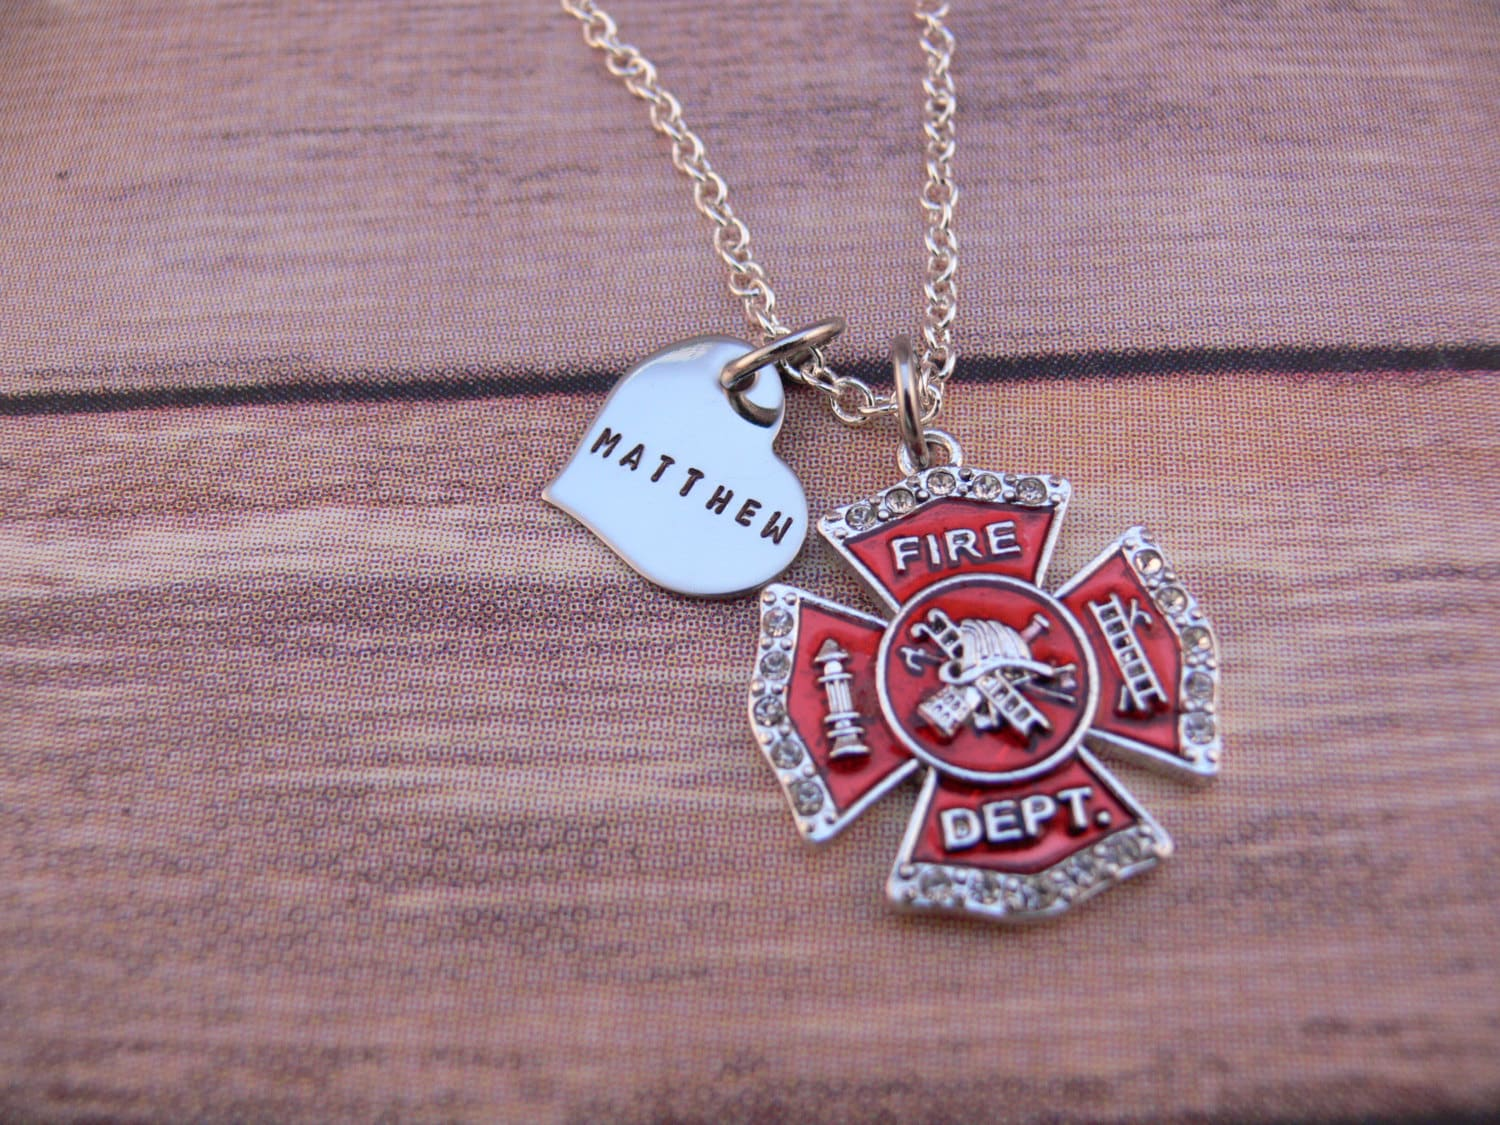 pin maltese firefighter necklace fireman of cross star pendant emt life